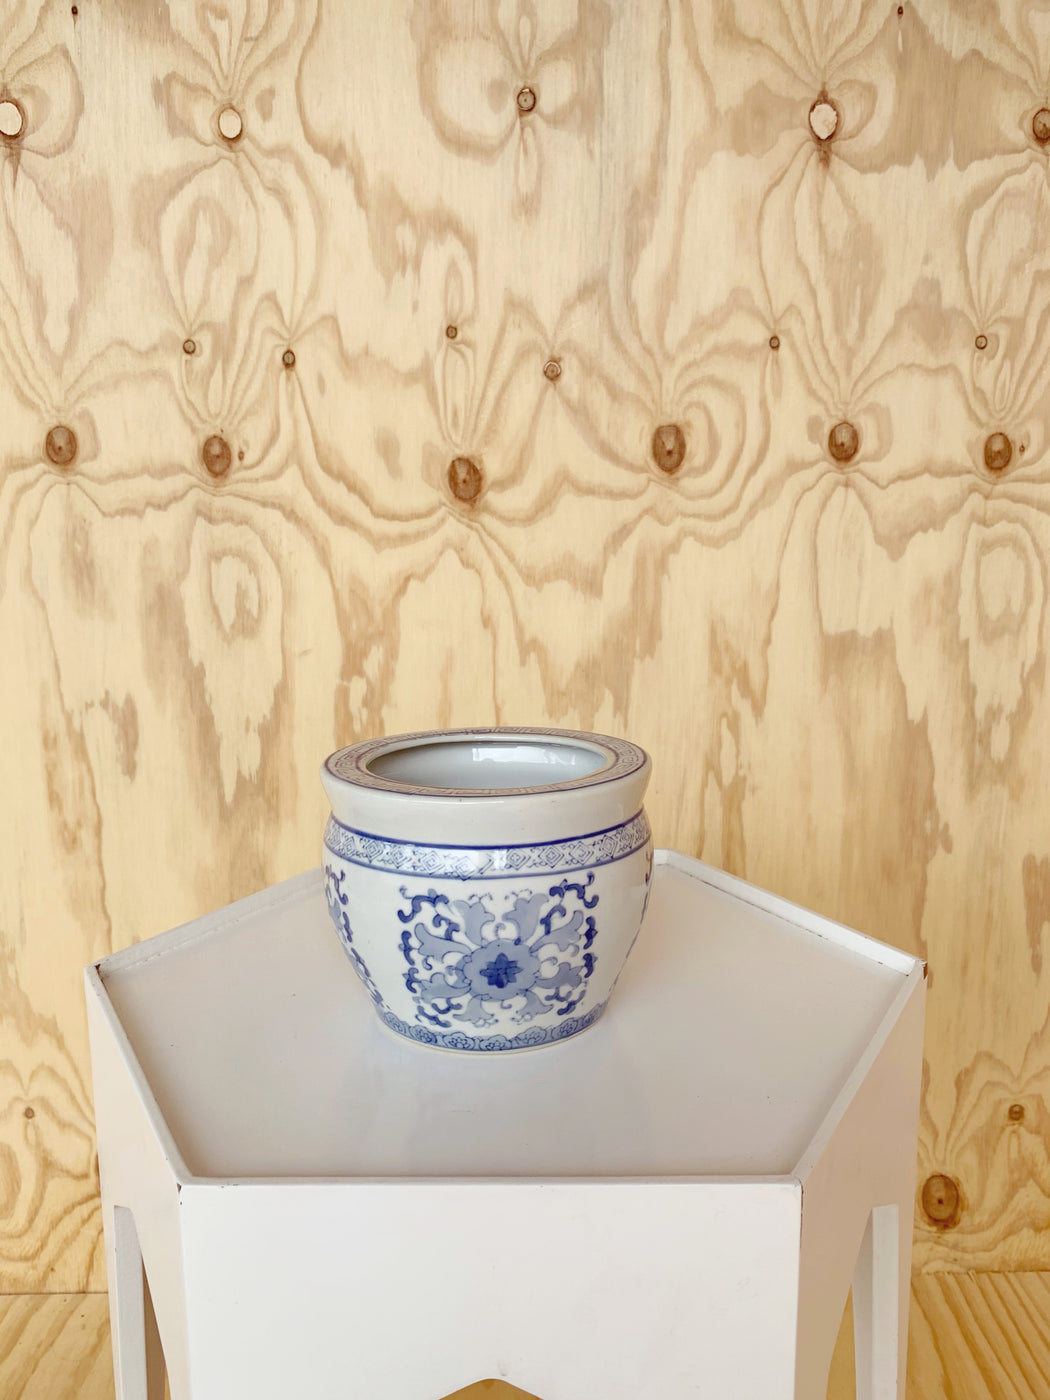 Chinese Ceramic Plant Pot - Storytellers Workshop